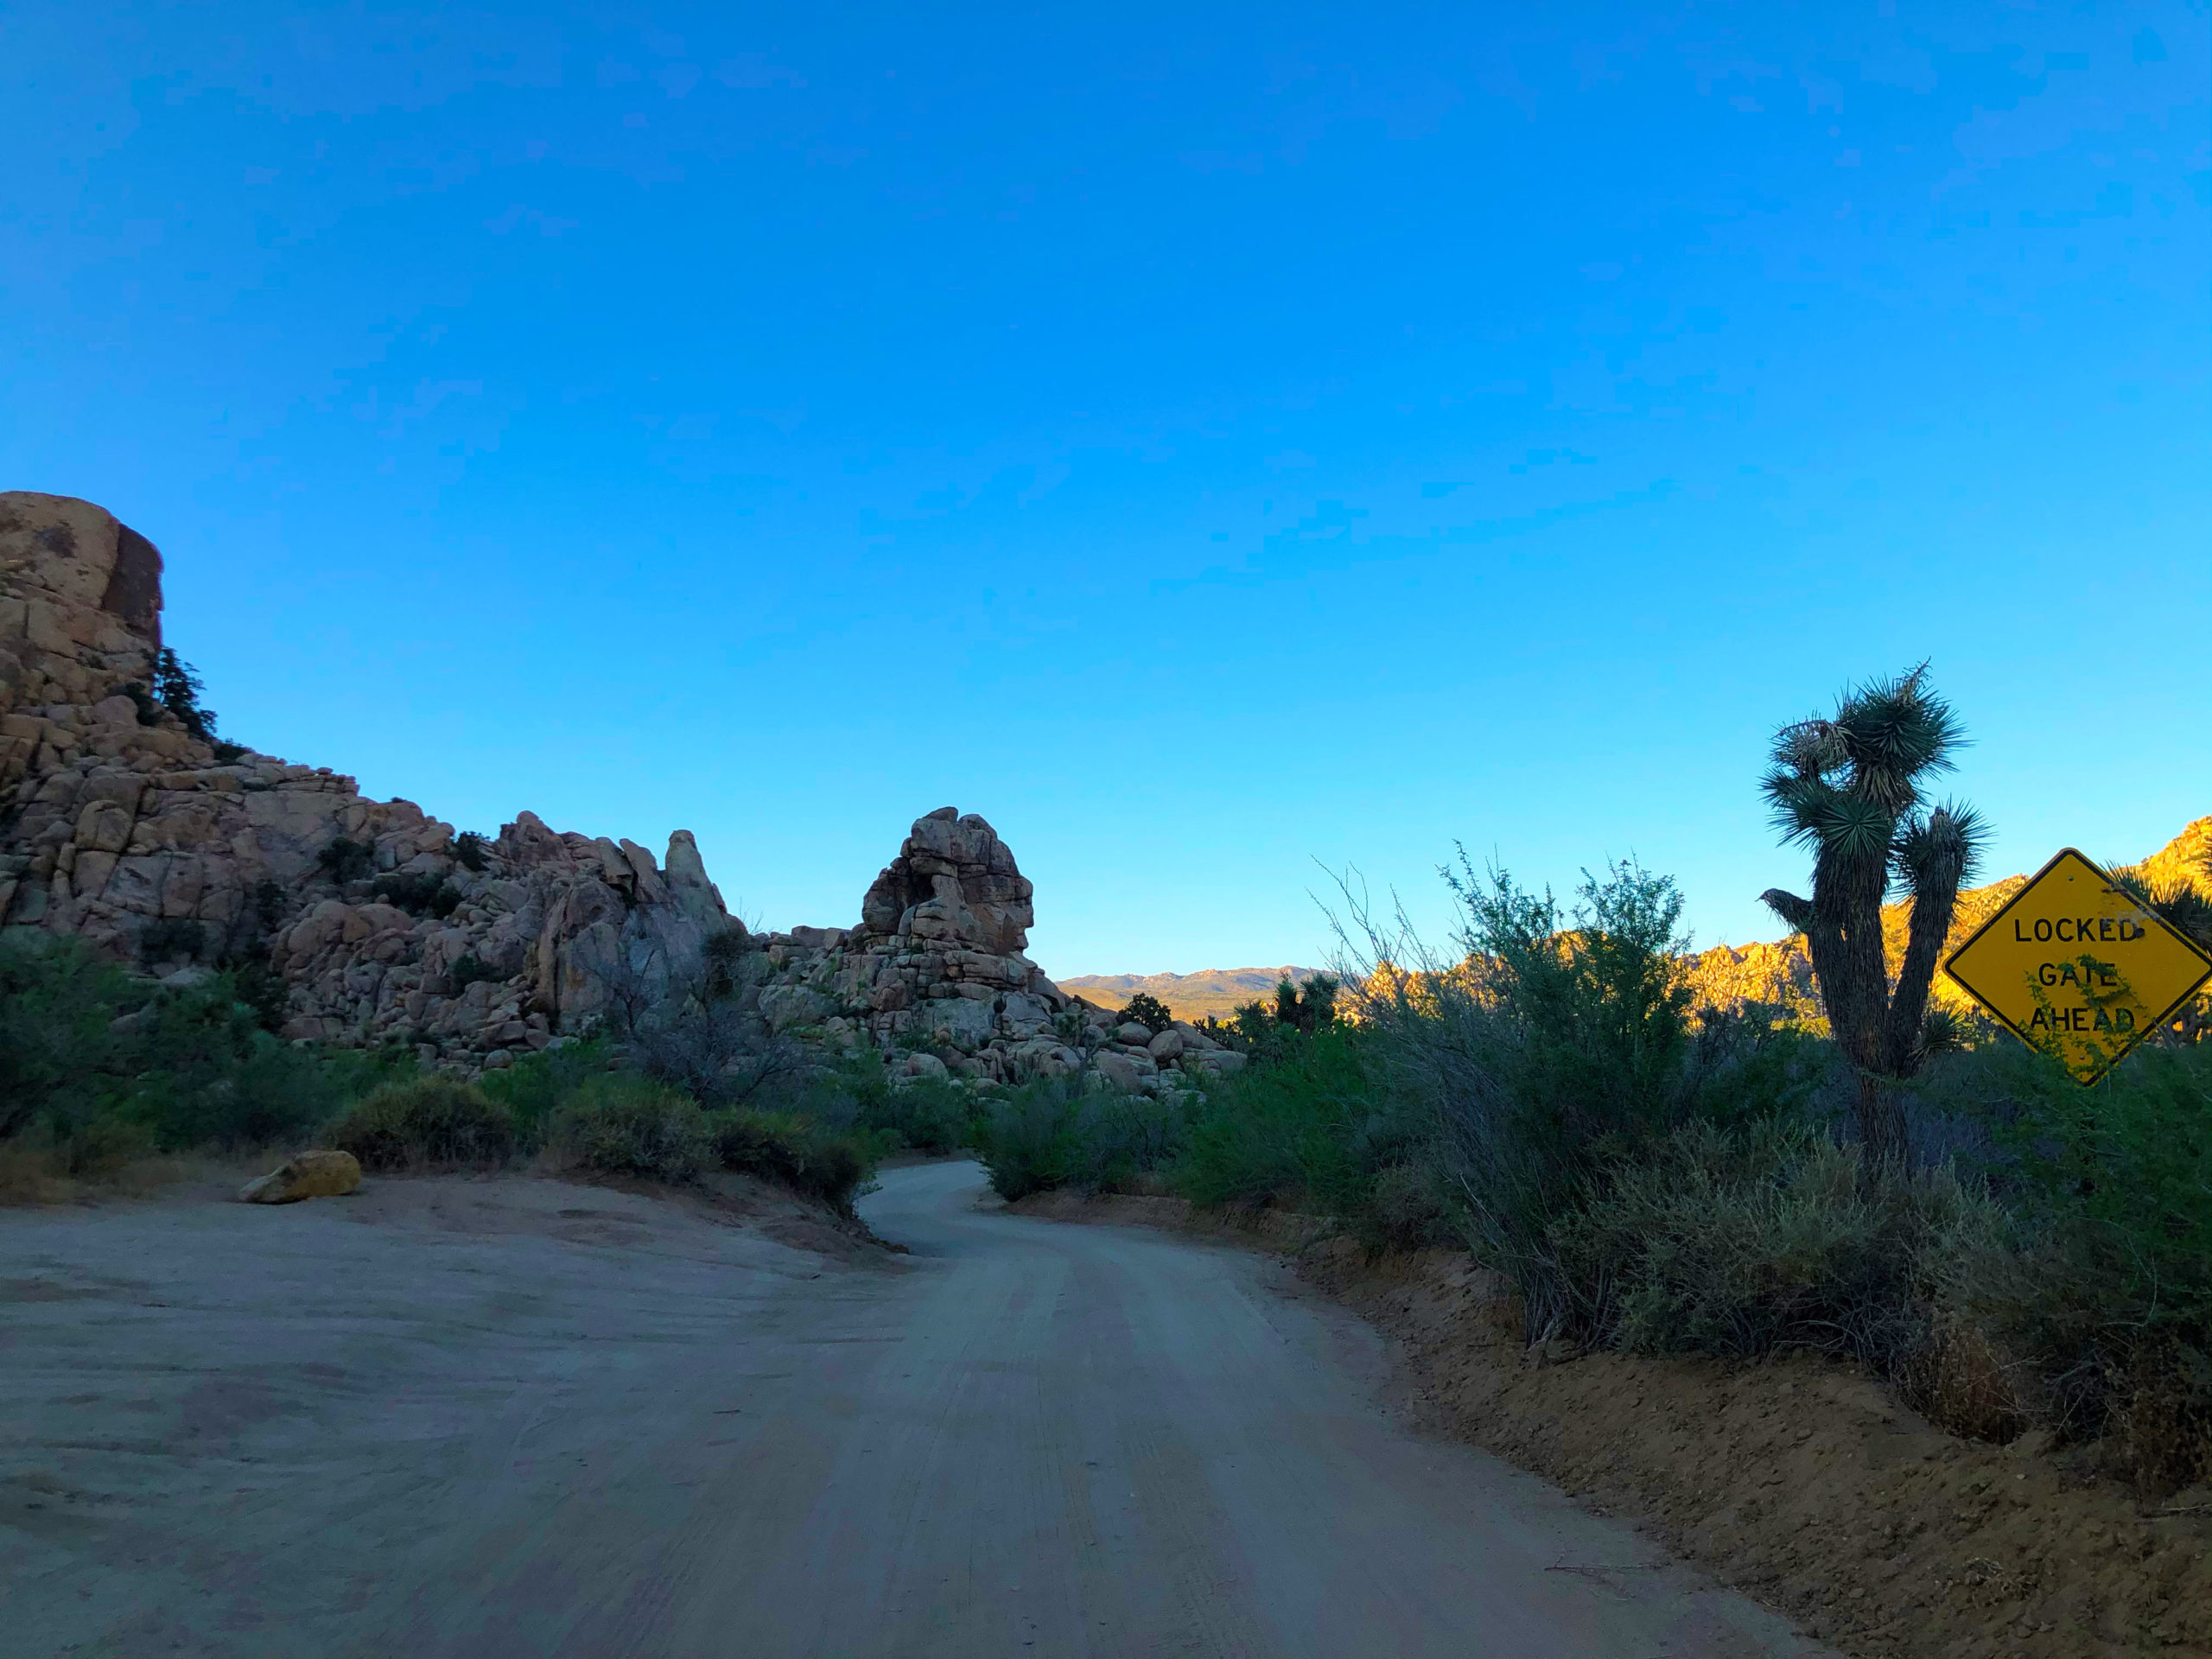 joshua-tree-national-park-climbing-camping-hiking-adventure-tour-lost-horse-ranger-station-locked-gate-ahead